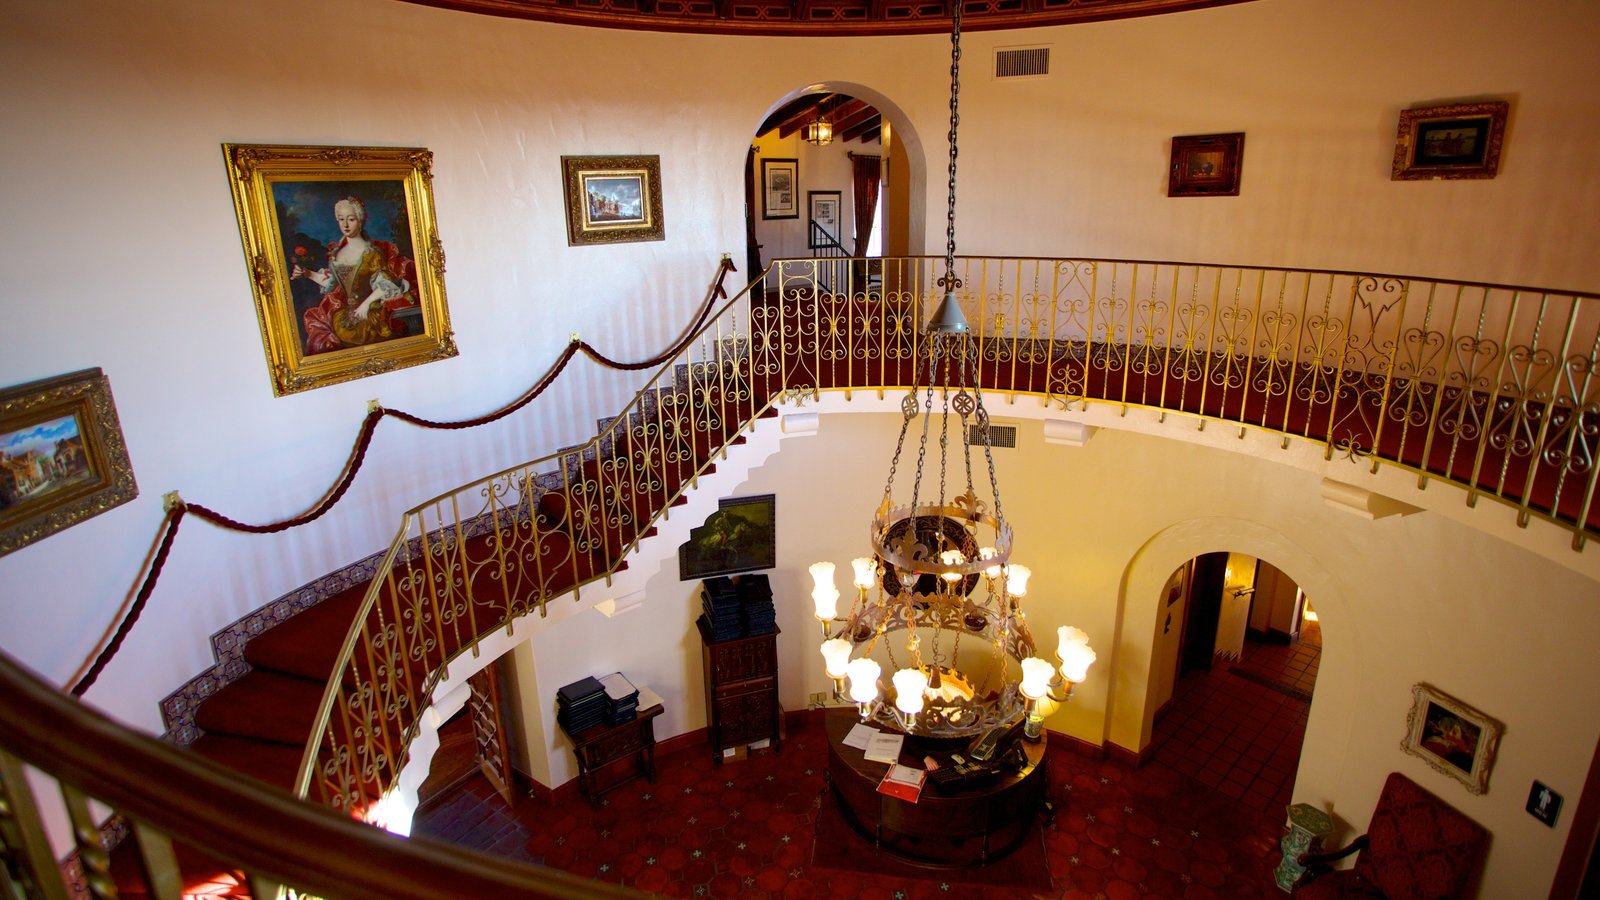 Wrigley Mansion which includes interior views